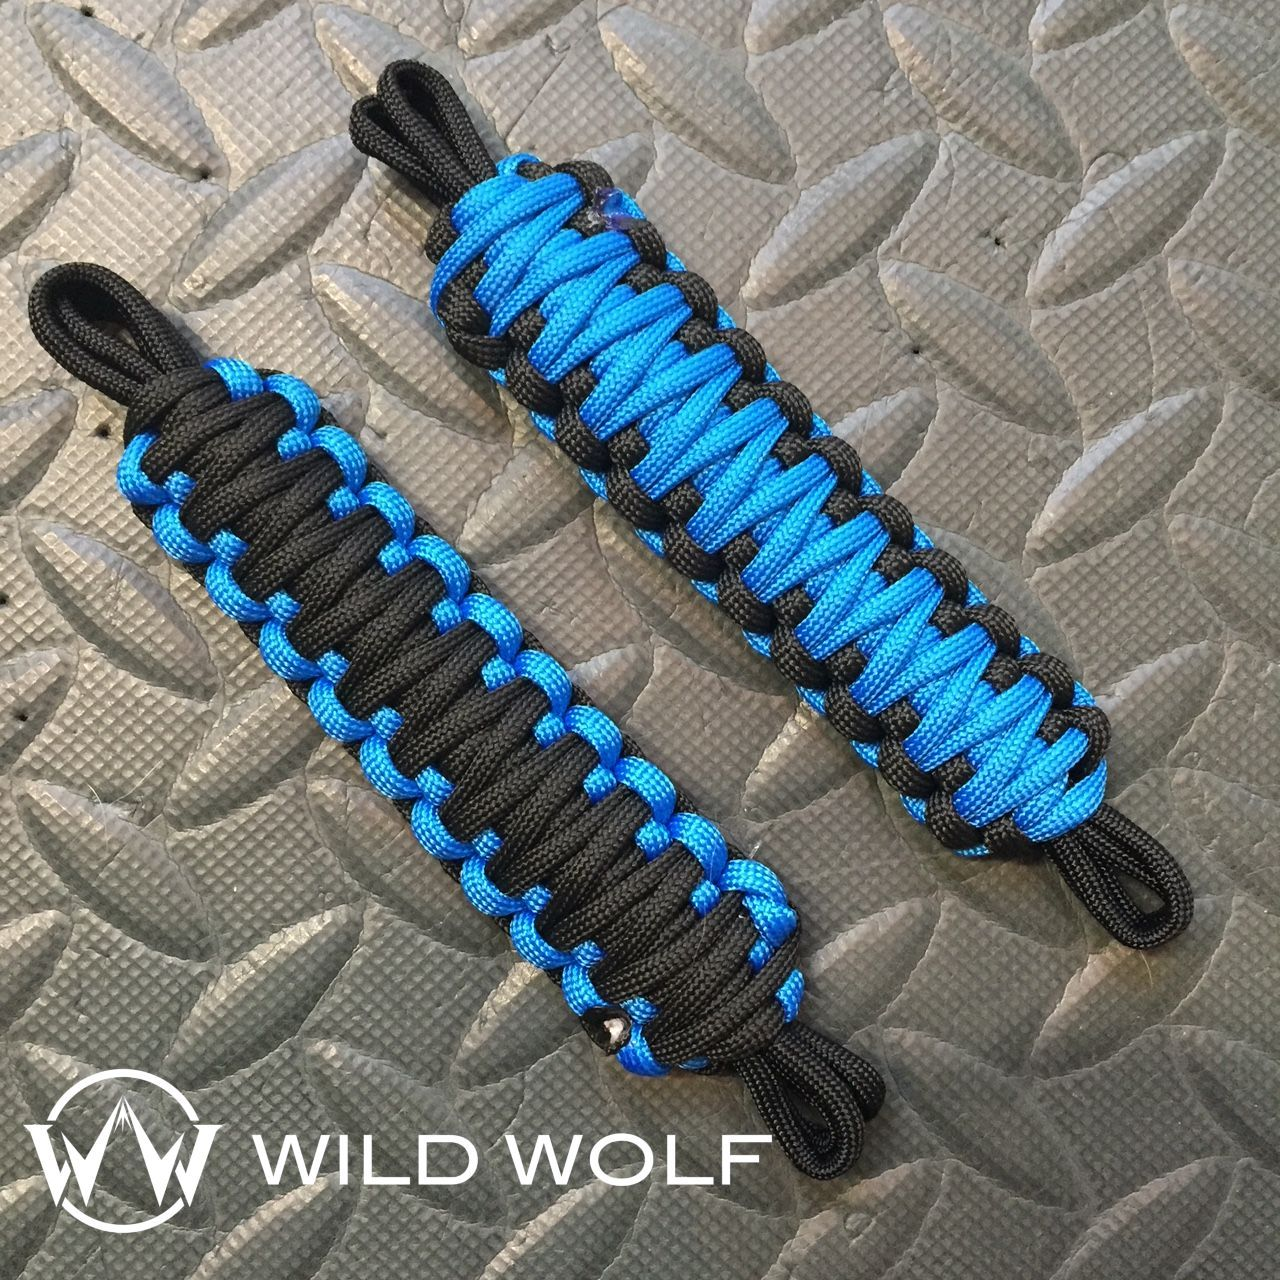 Sky Blue And Black Jeep Door Straps Order Your Own Set In